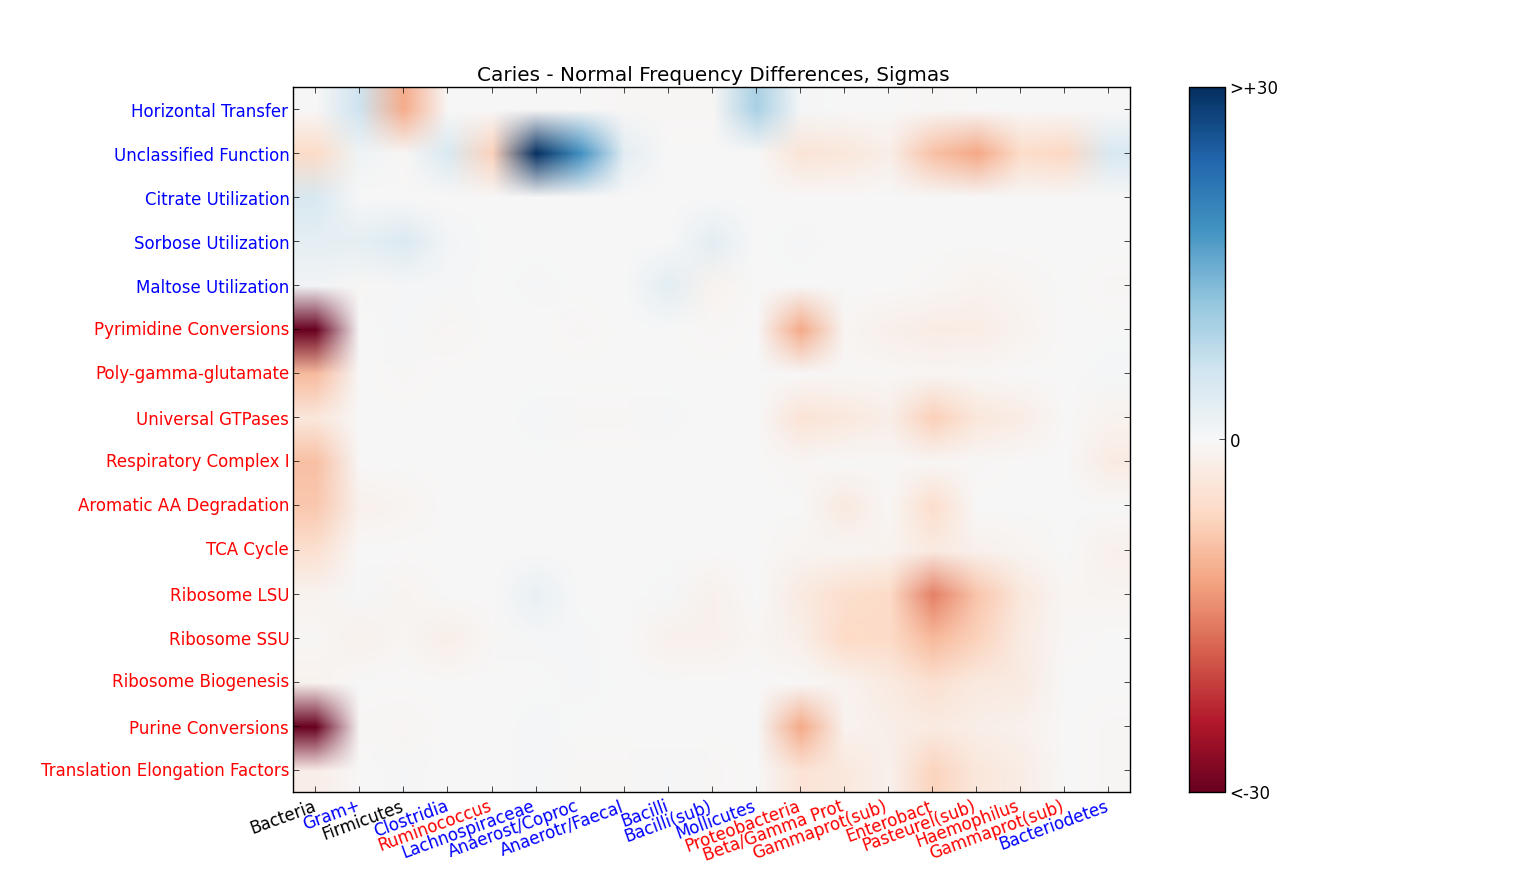 Plot showing significant differences between groups; horizontal axis is phylogeny, vertical axis is function.  Red indicates significant decreases, blue indicates increases.